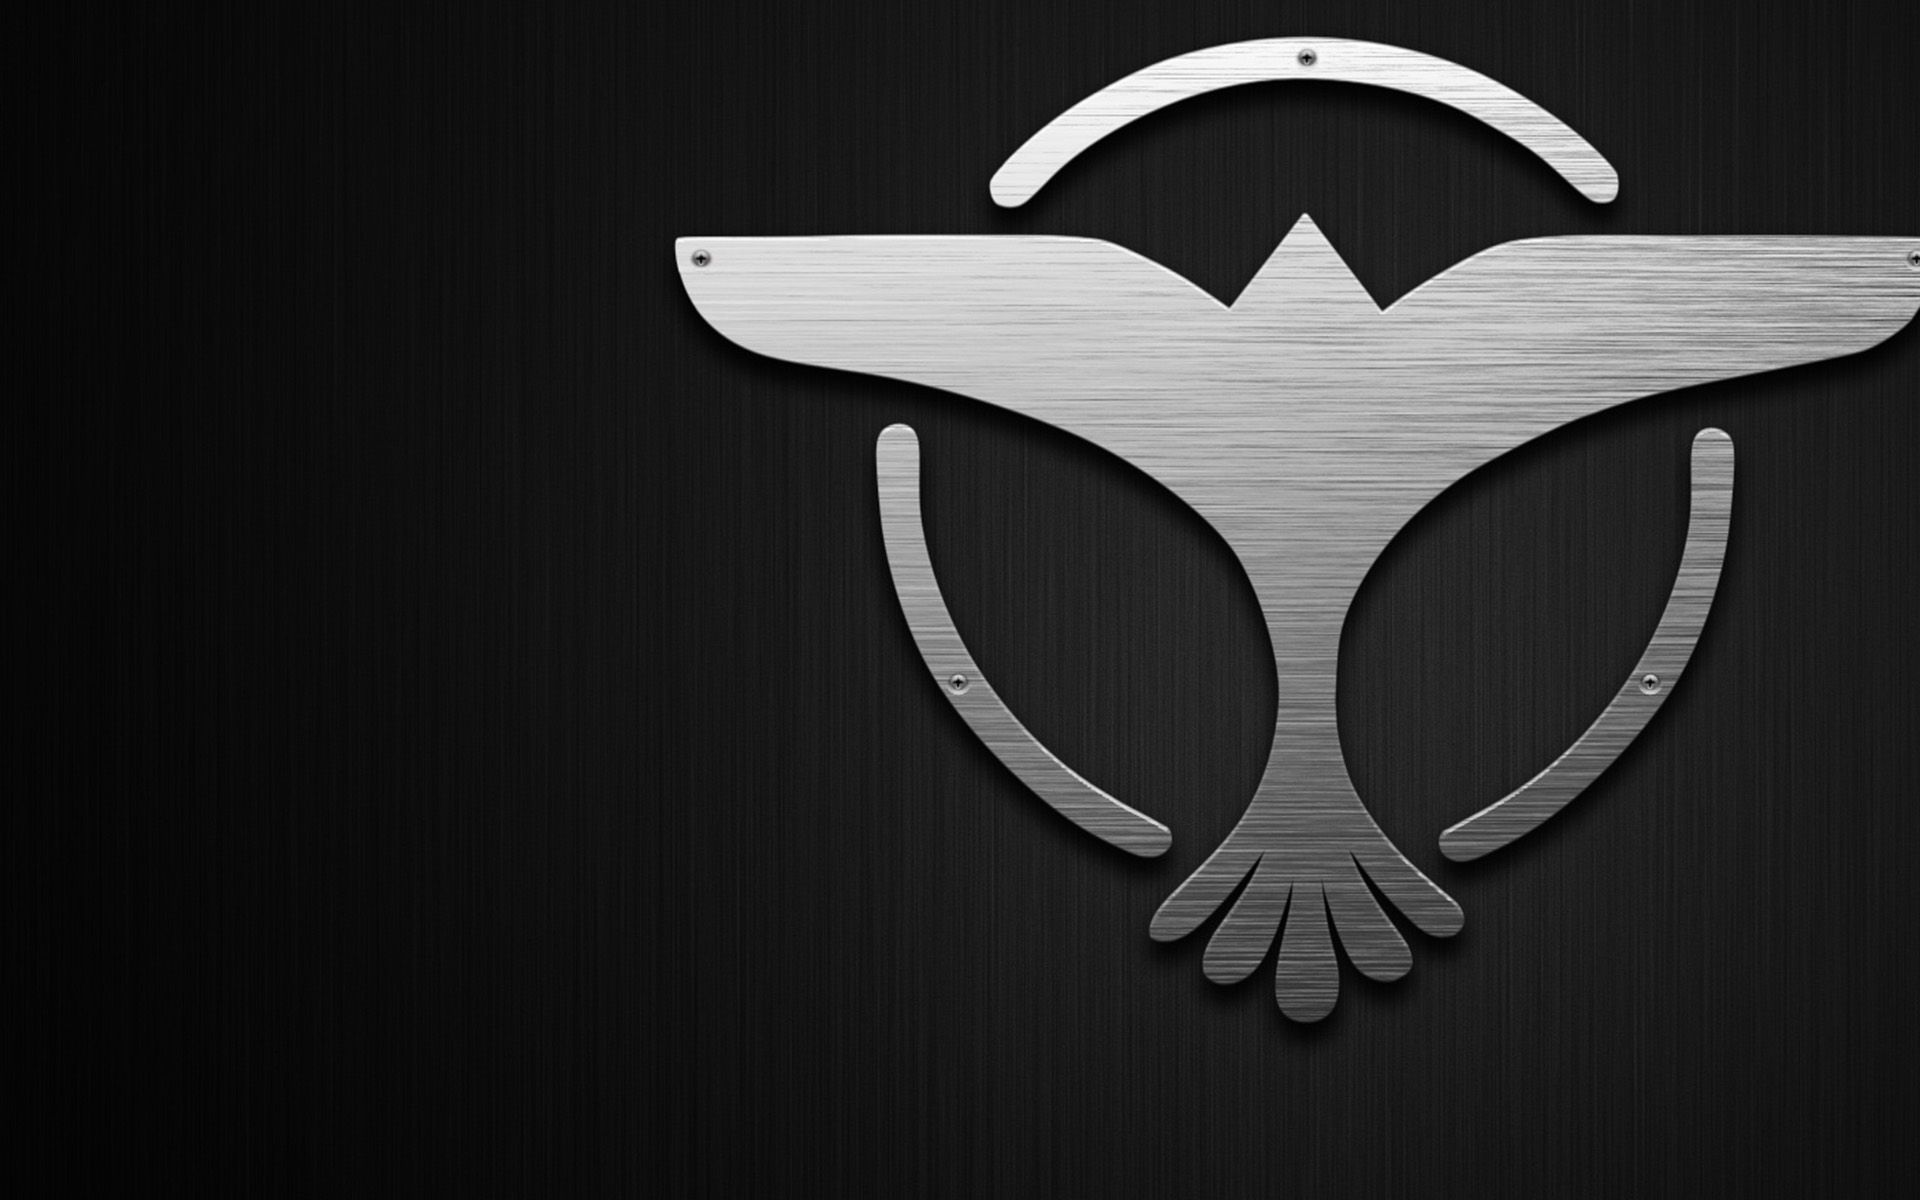 Tiesto Titanium Feed Wallpaper 1920x1200 Hot HD Wallpaper 1920x1200